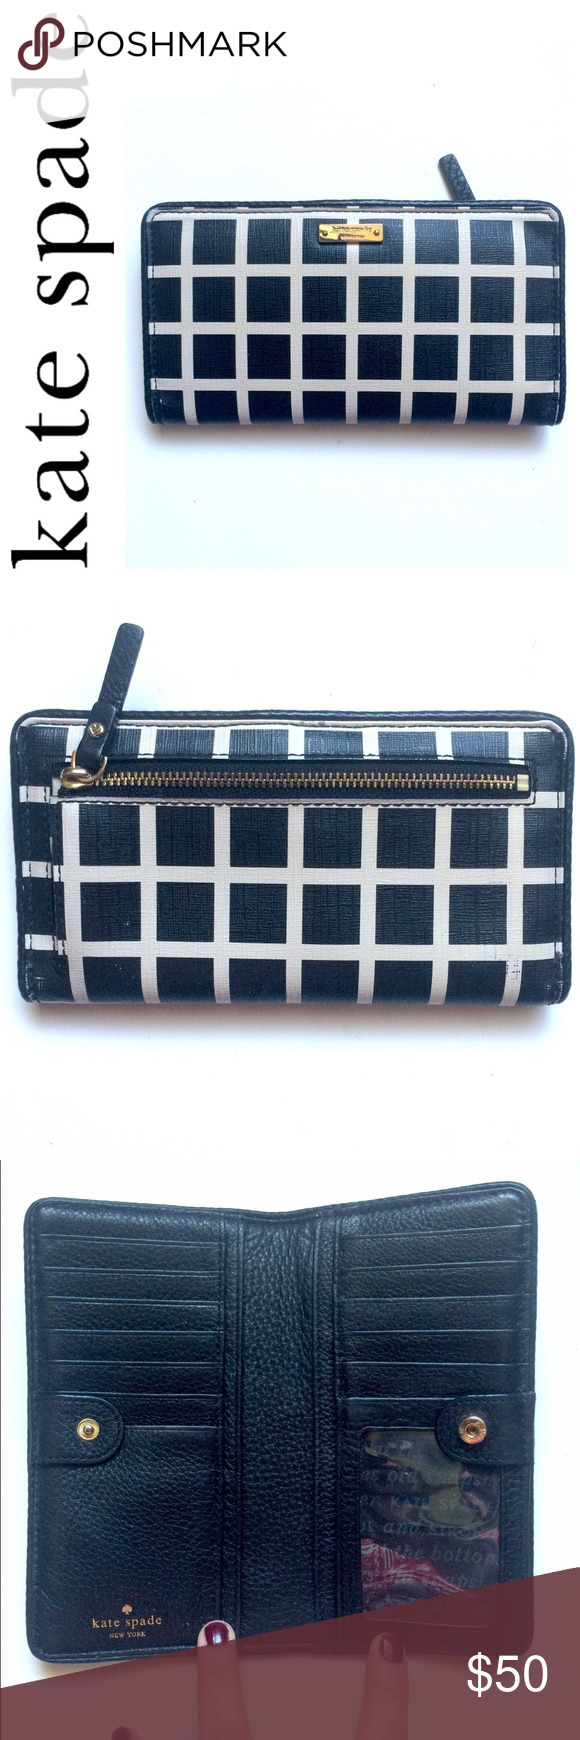 Kate Spade Wallet Used with love. Lots of card slots and a zippered coin compartment too. Slip pockets for cash and/or checkbook. Shows usual signs of use but nothing major. No stains rips etc. zipper and snap work fine kate spade Bags Wallets